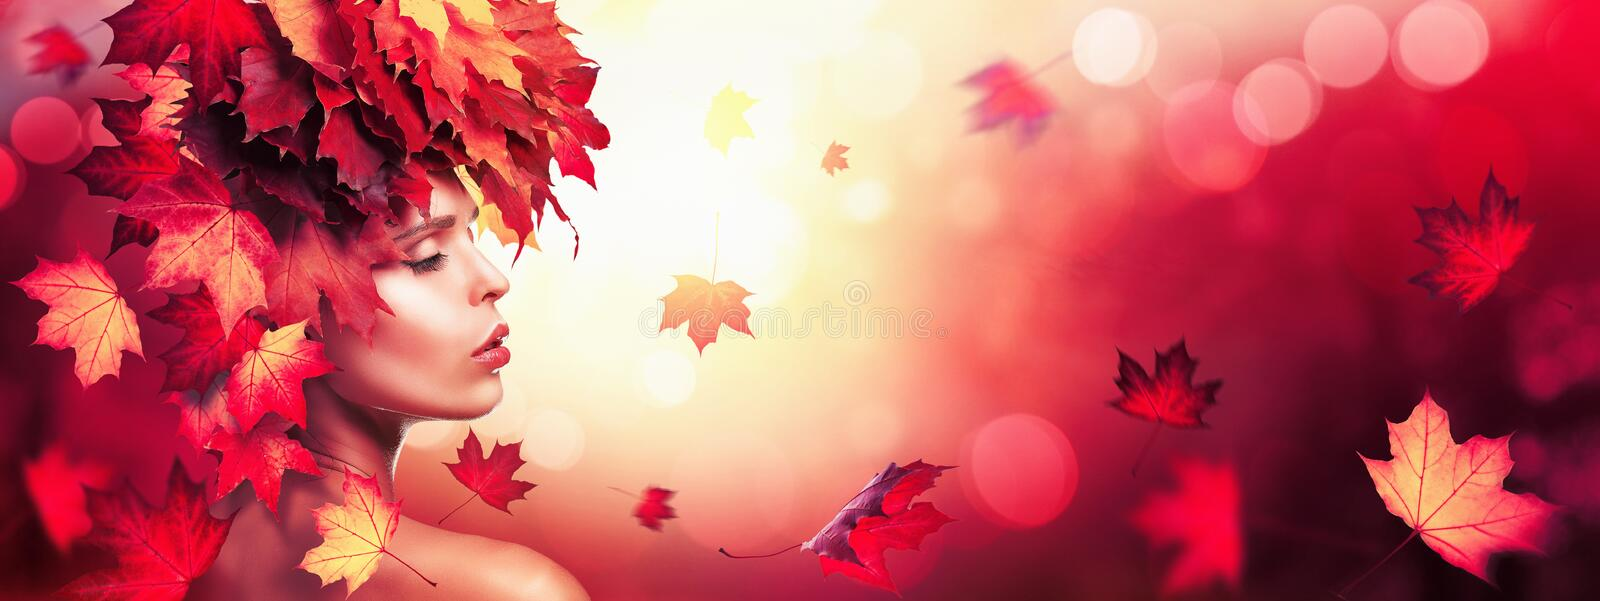 Autumn Beautiful Woman With Falling Leaves Over Nature Backgroun royalty free stock photography